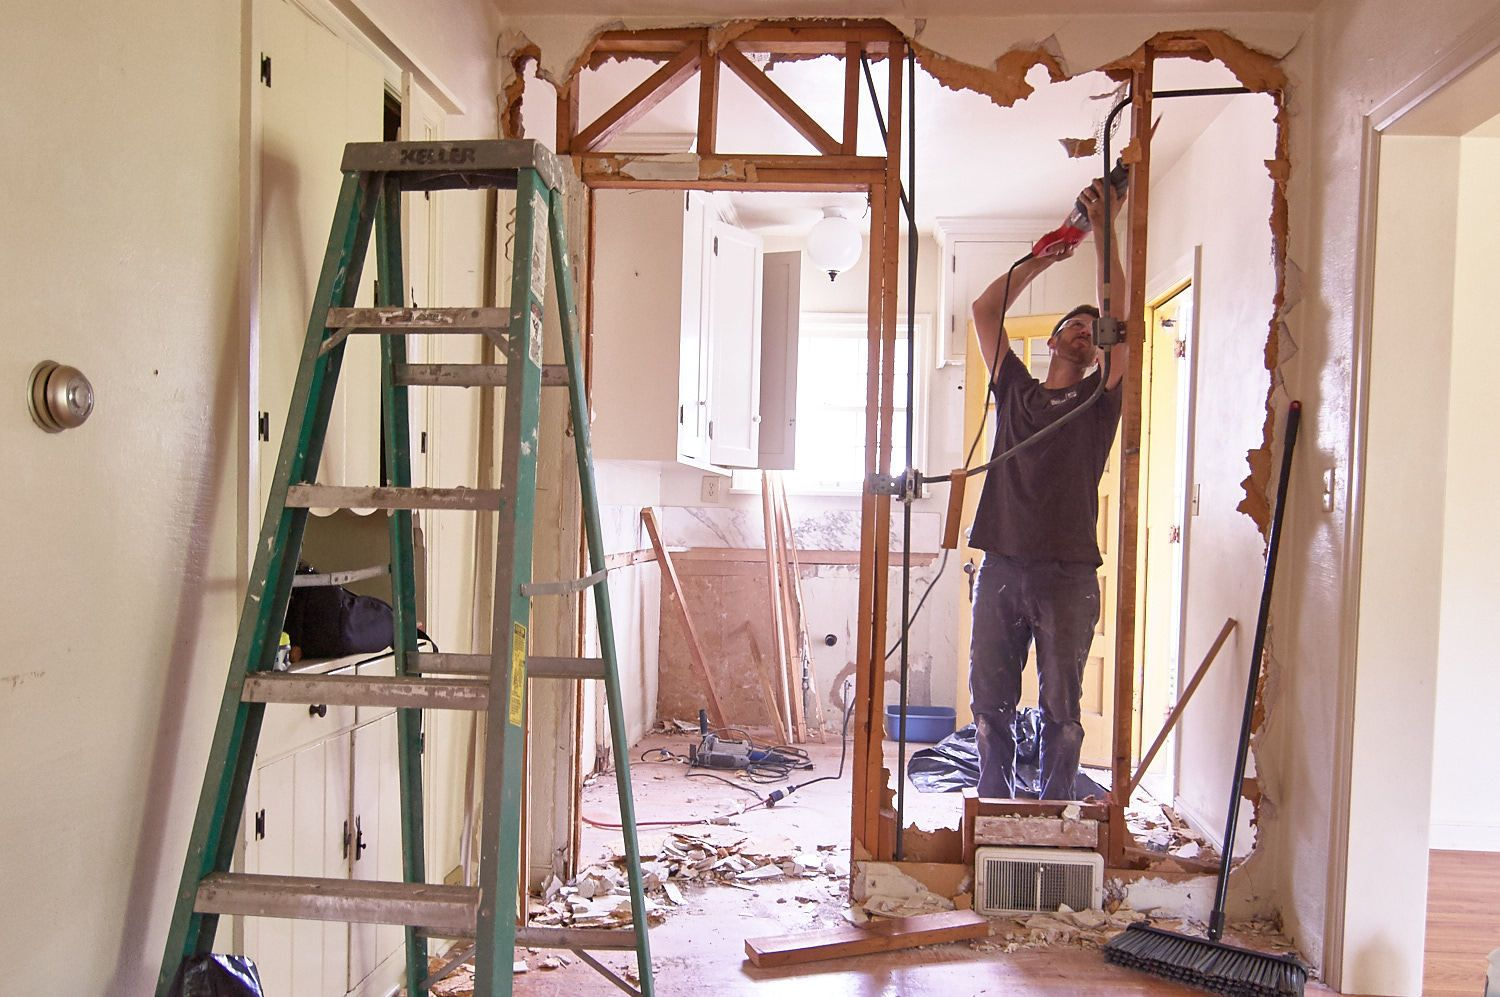 Demo A Wall In 6 Steps How To Safely Get Rid Of An Interior On Your Own Got You Just Can T Stand Having Life Anymore